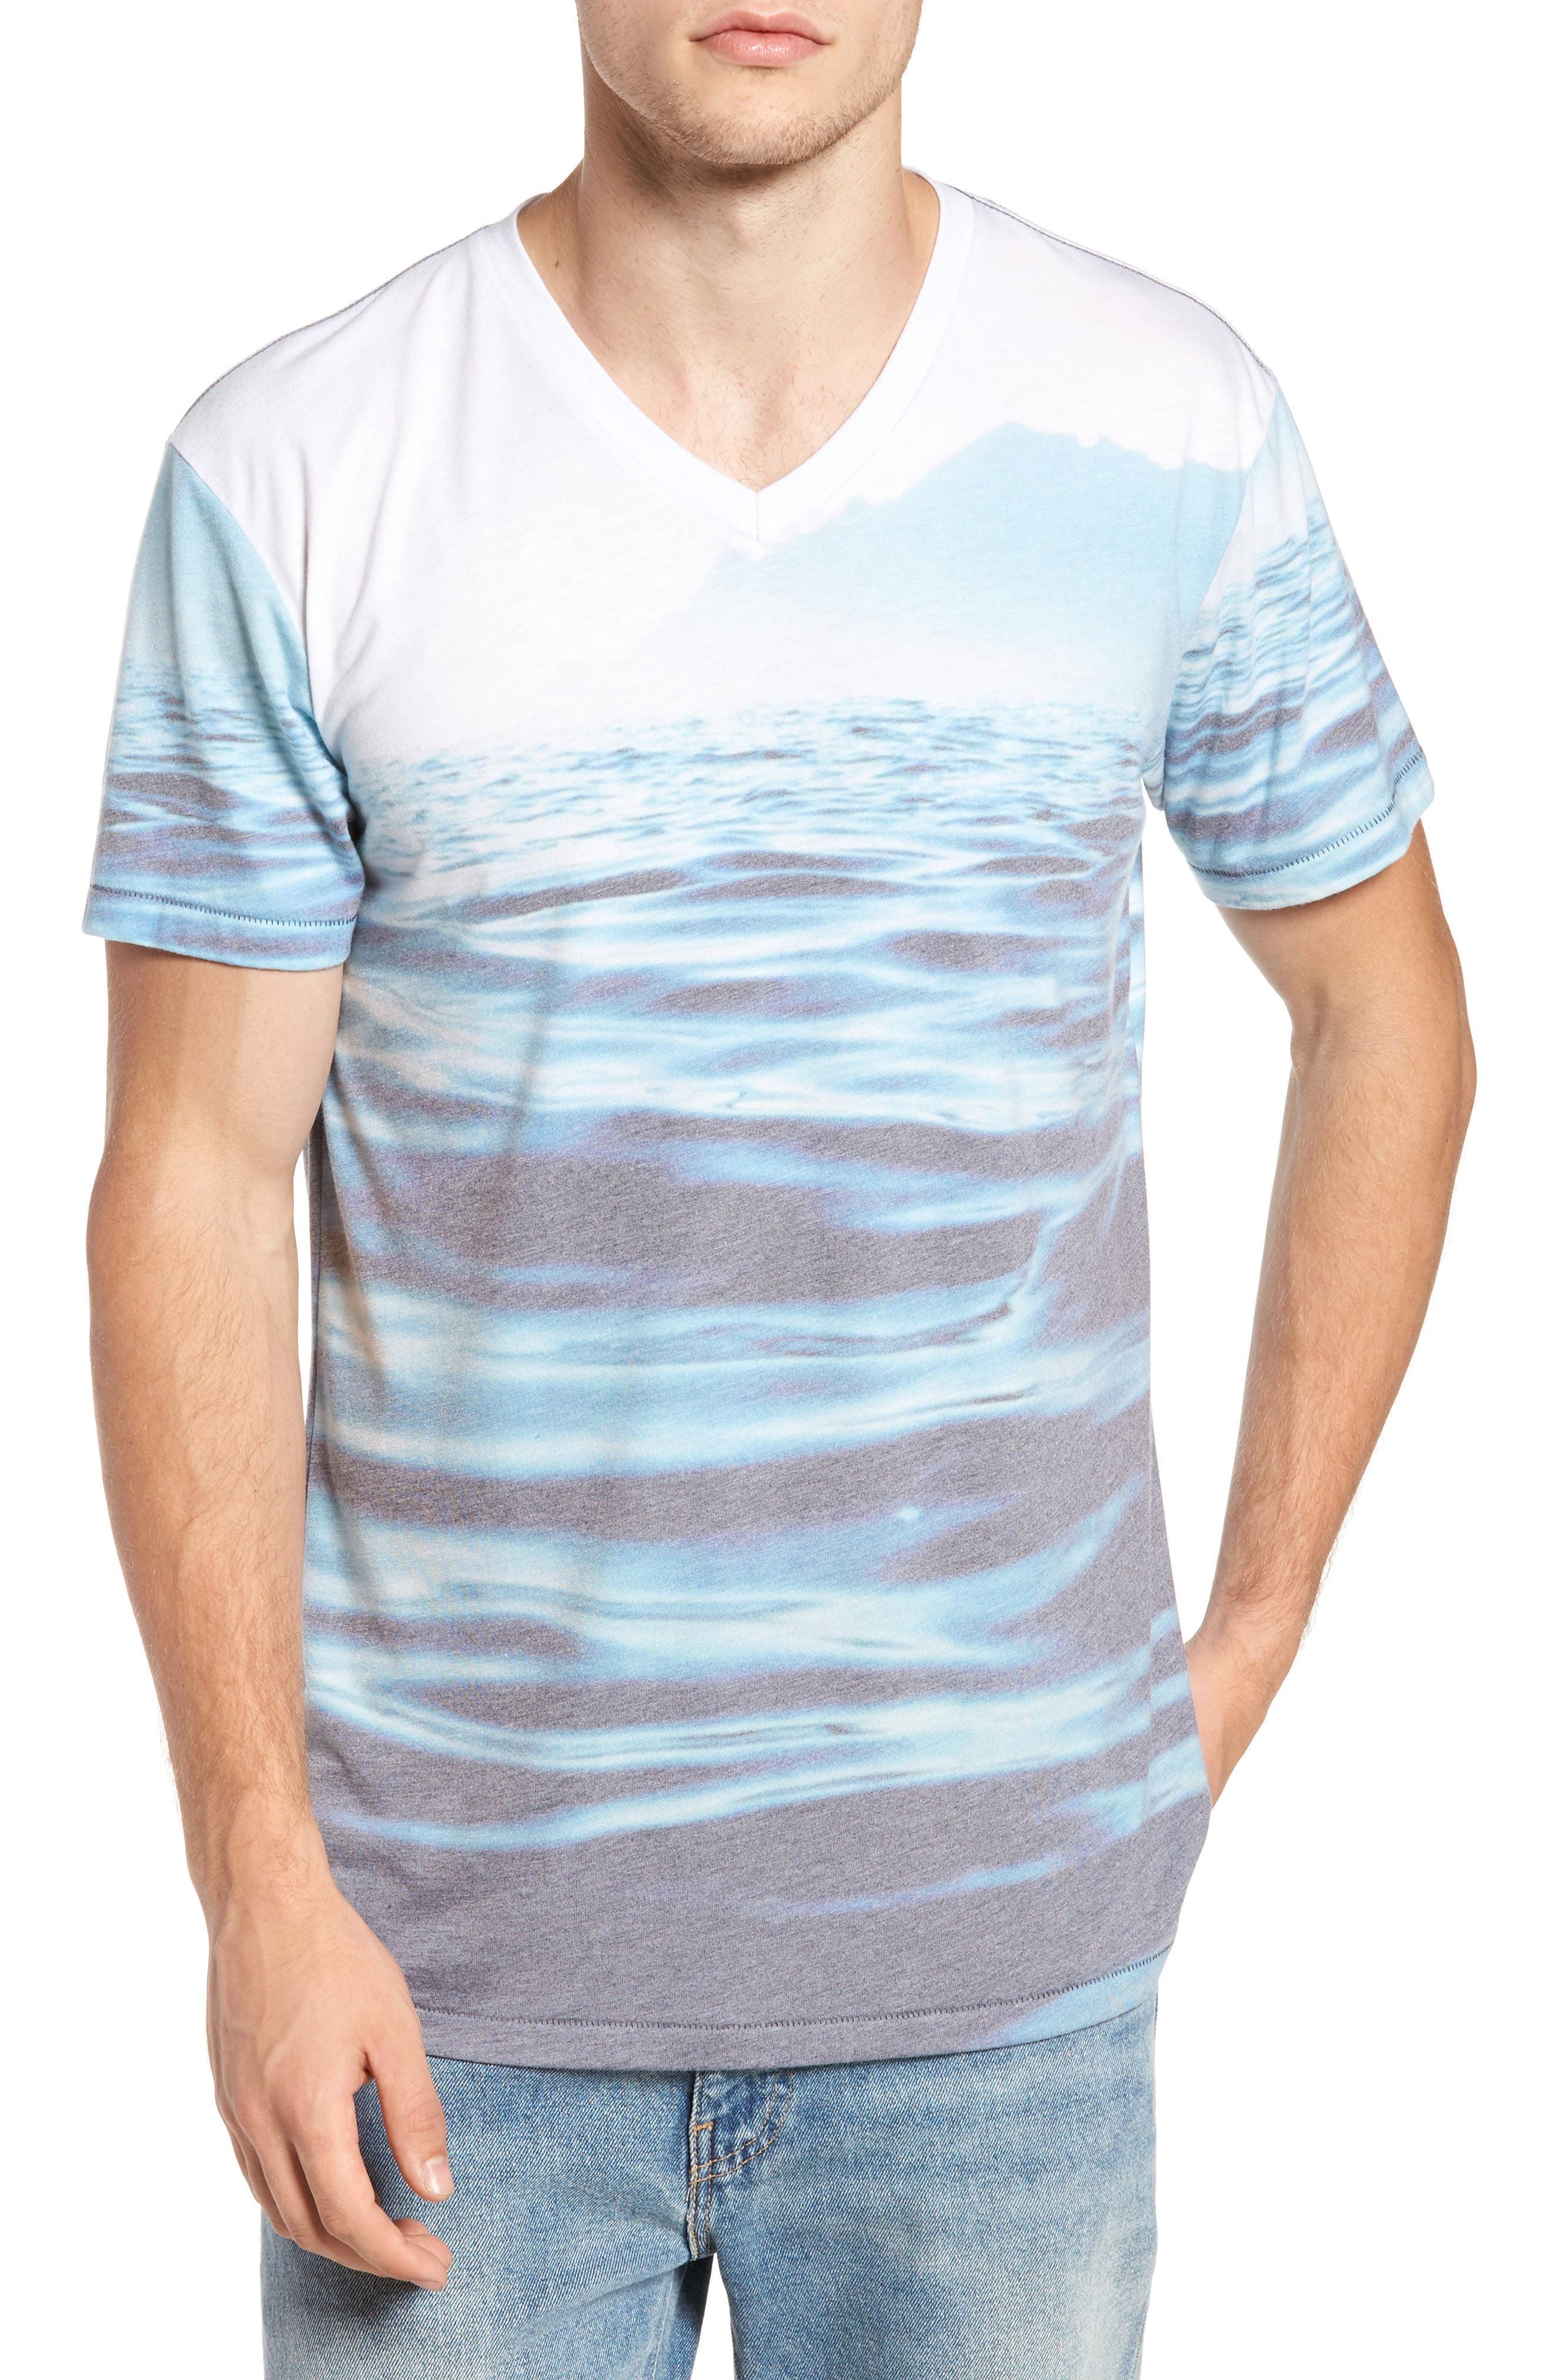 Mirage Waters T-Shirt,                         Main,                         color, Mirage Waters